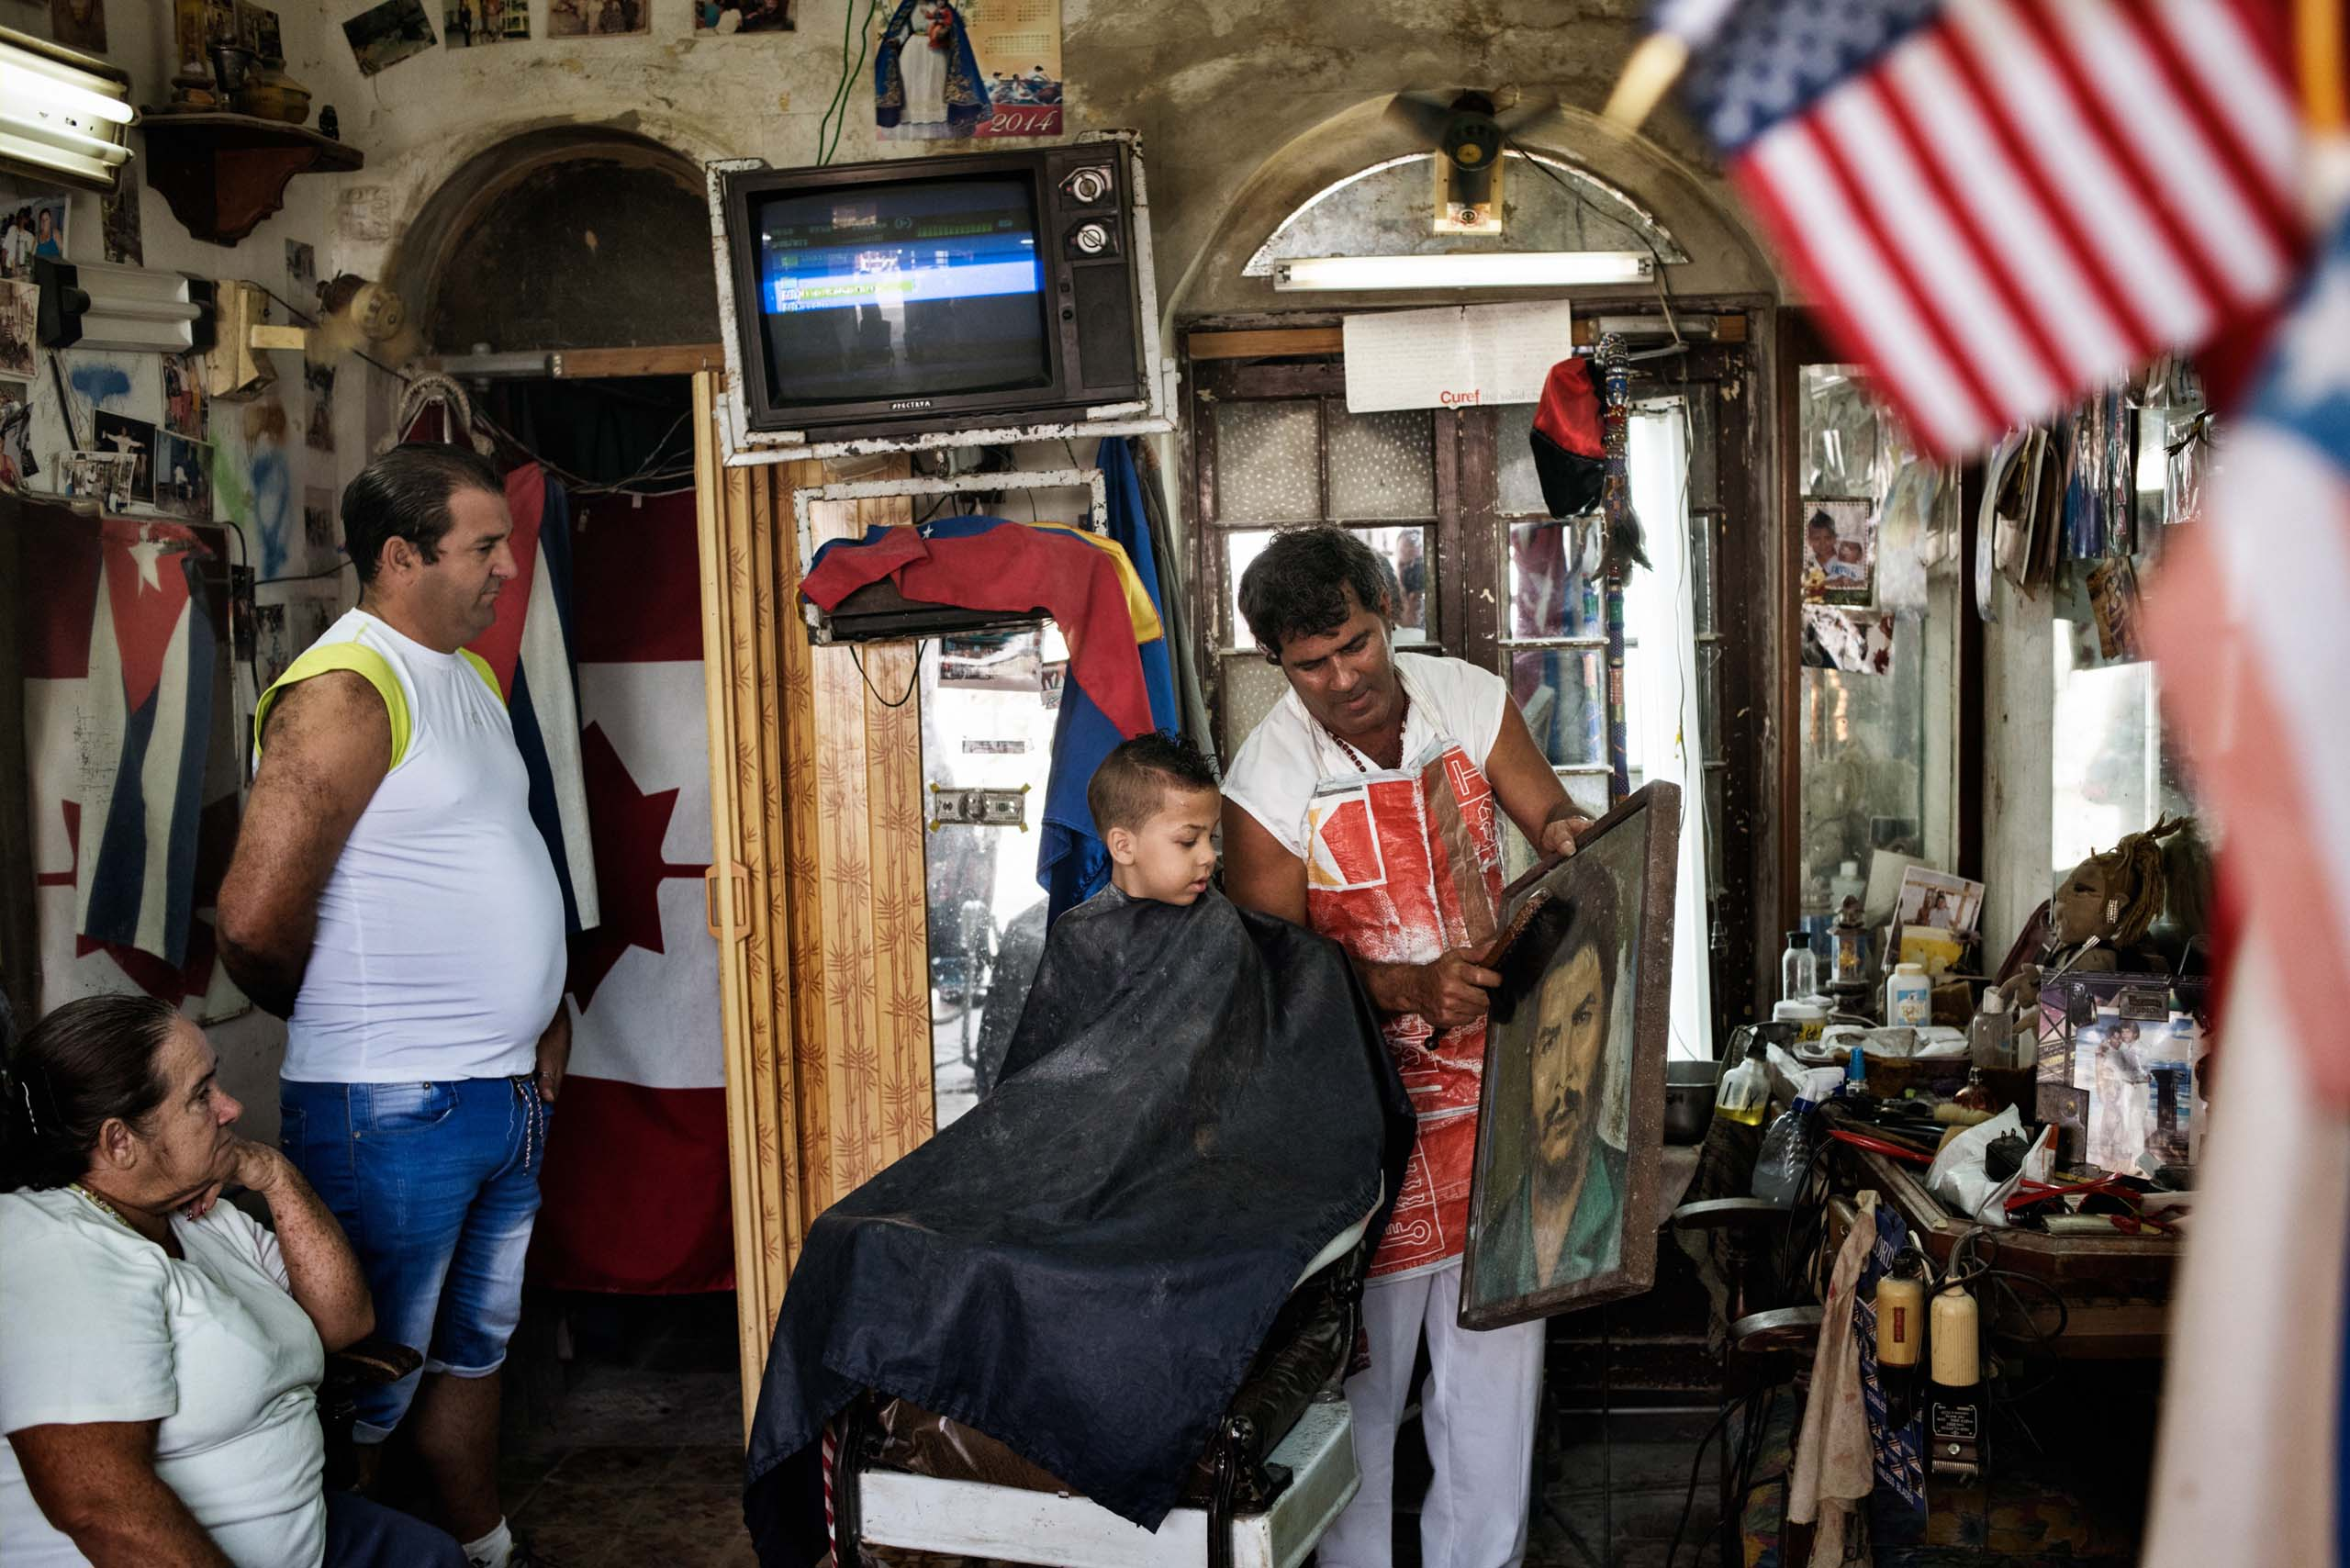 December 2014. A little boy gets his haircut in a barbershop in Regla, a suburb of Havana.